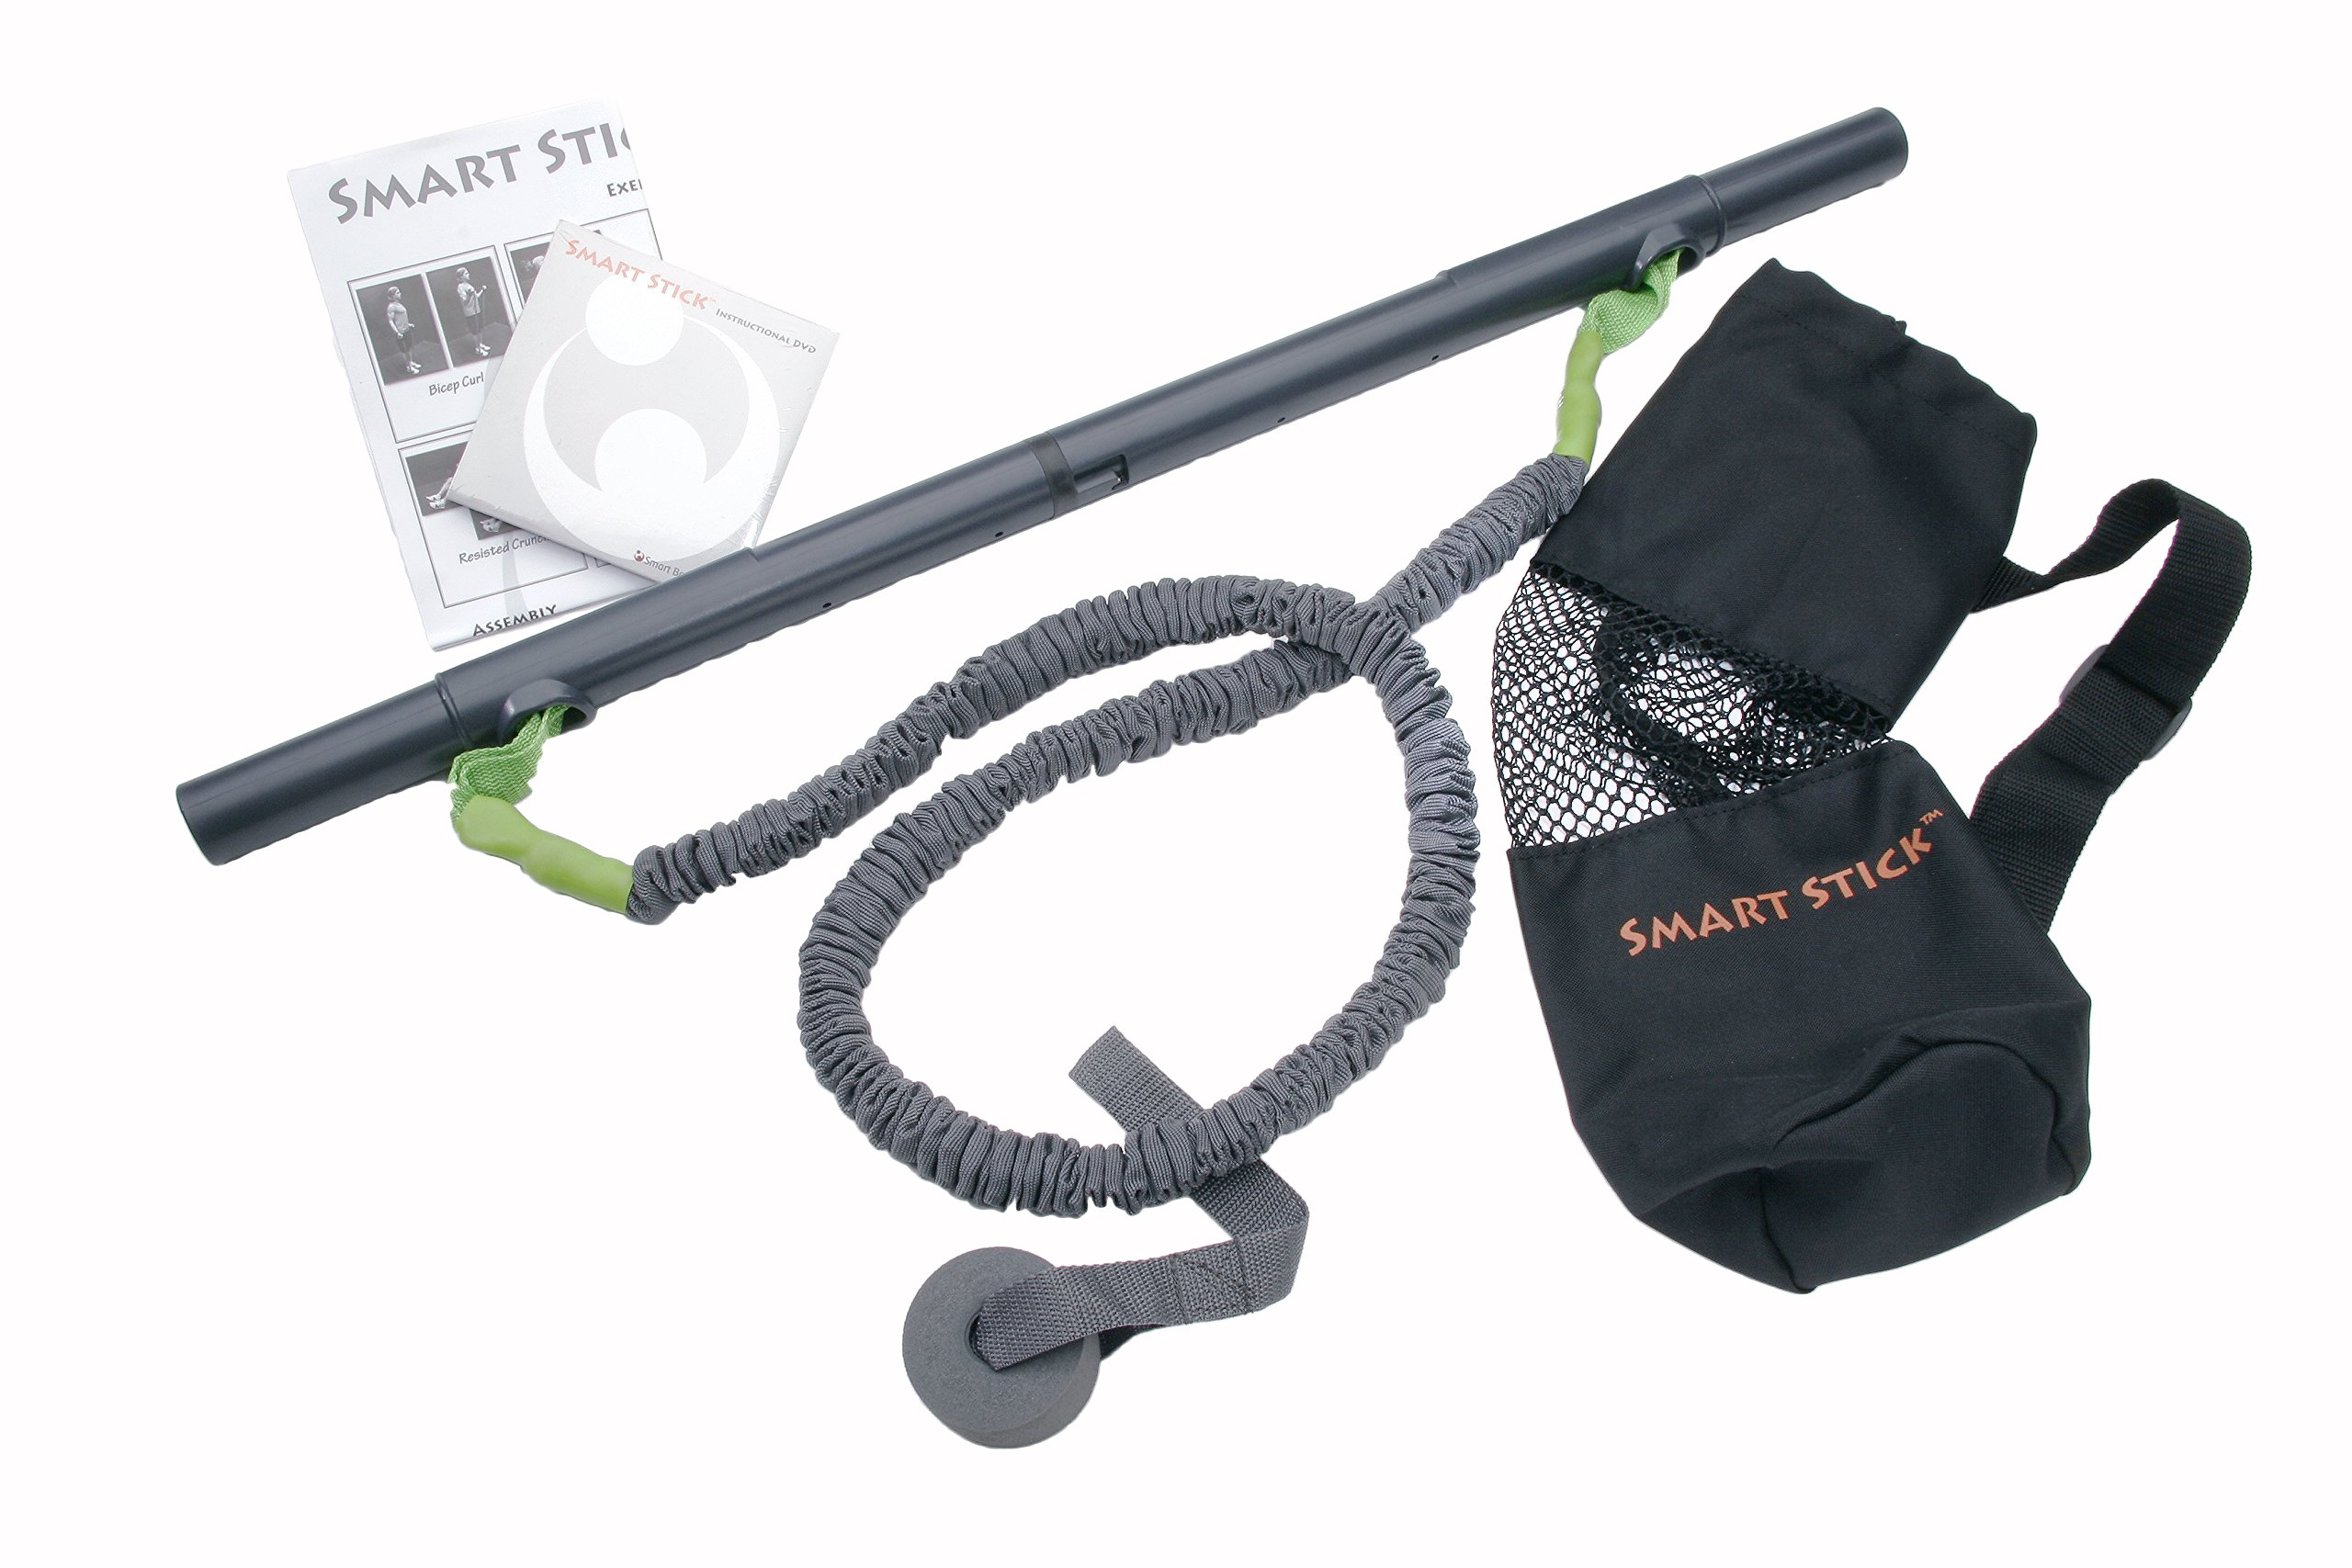 Smart Stick Weighted by Smart Body Performance